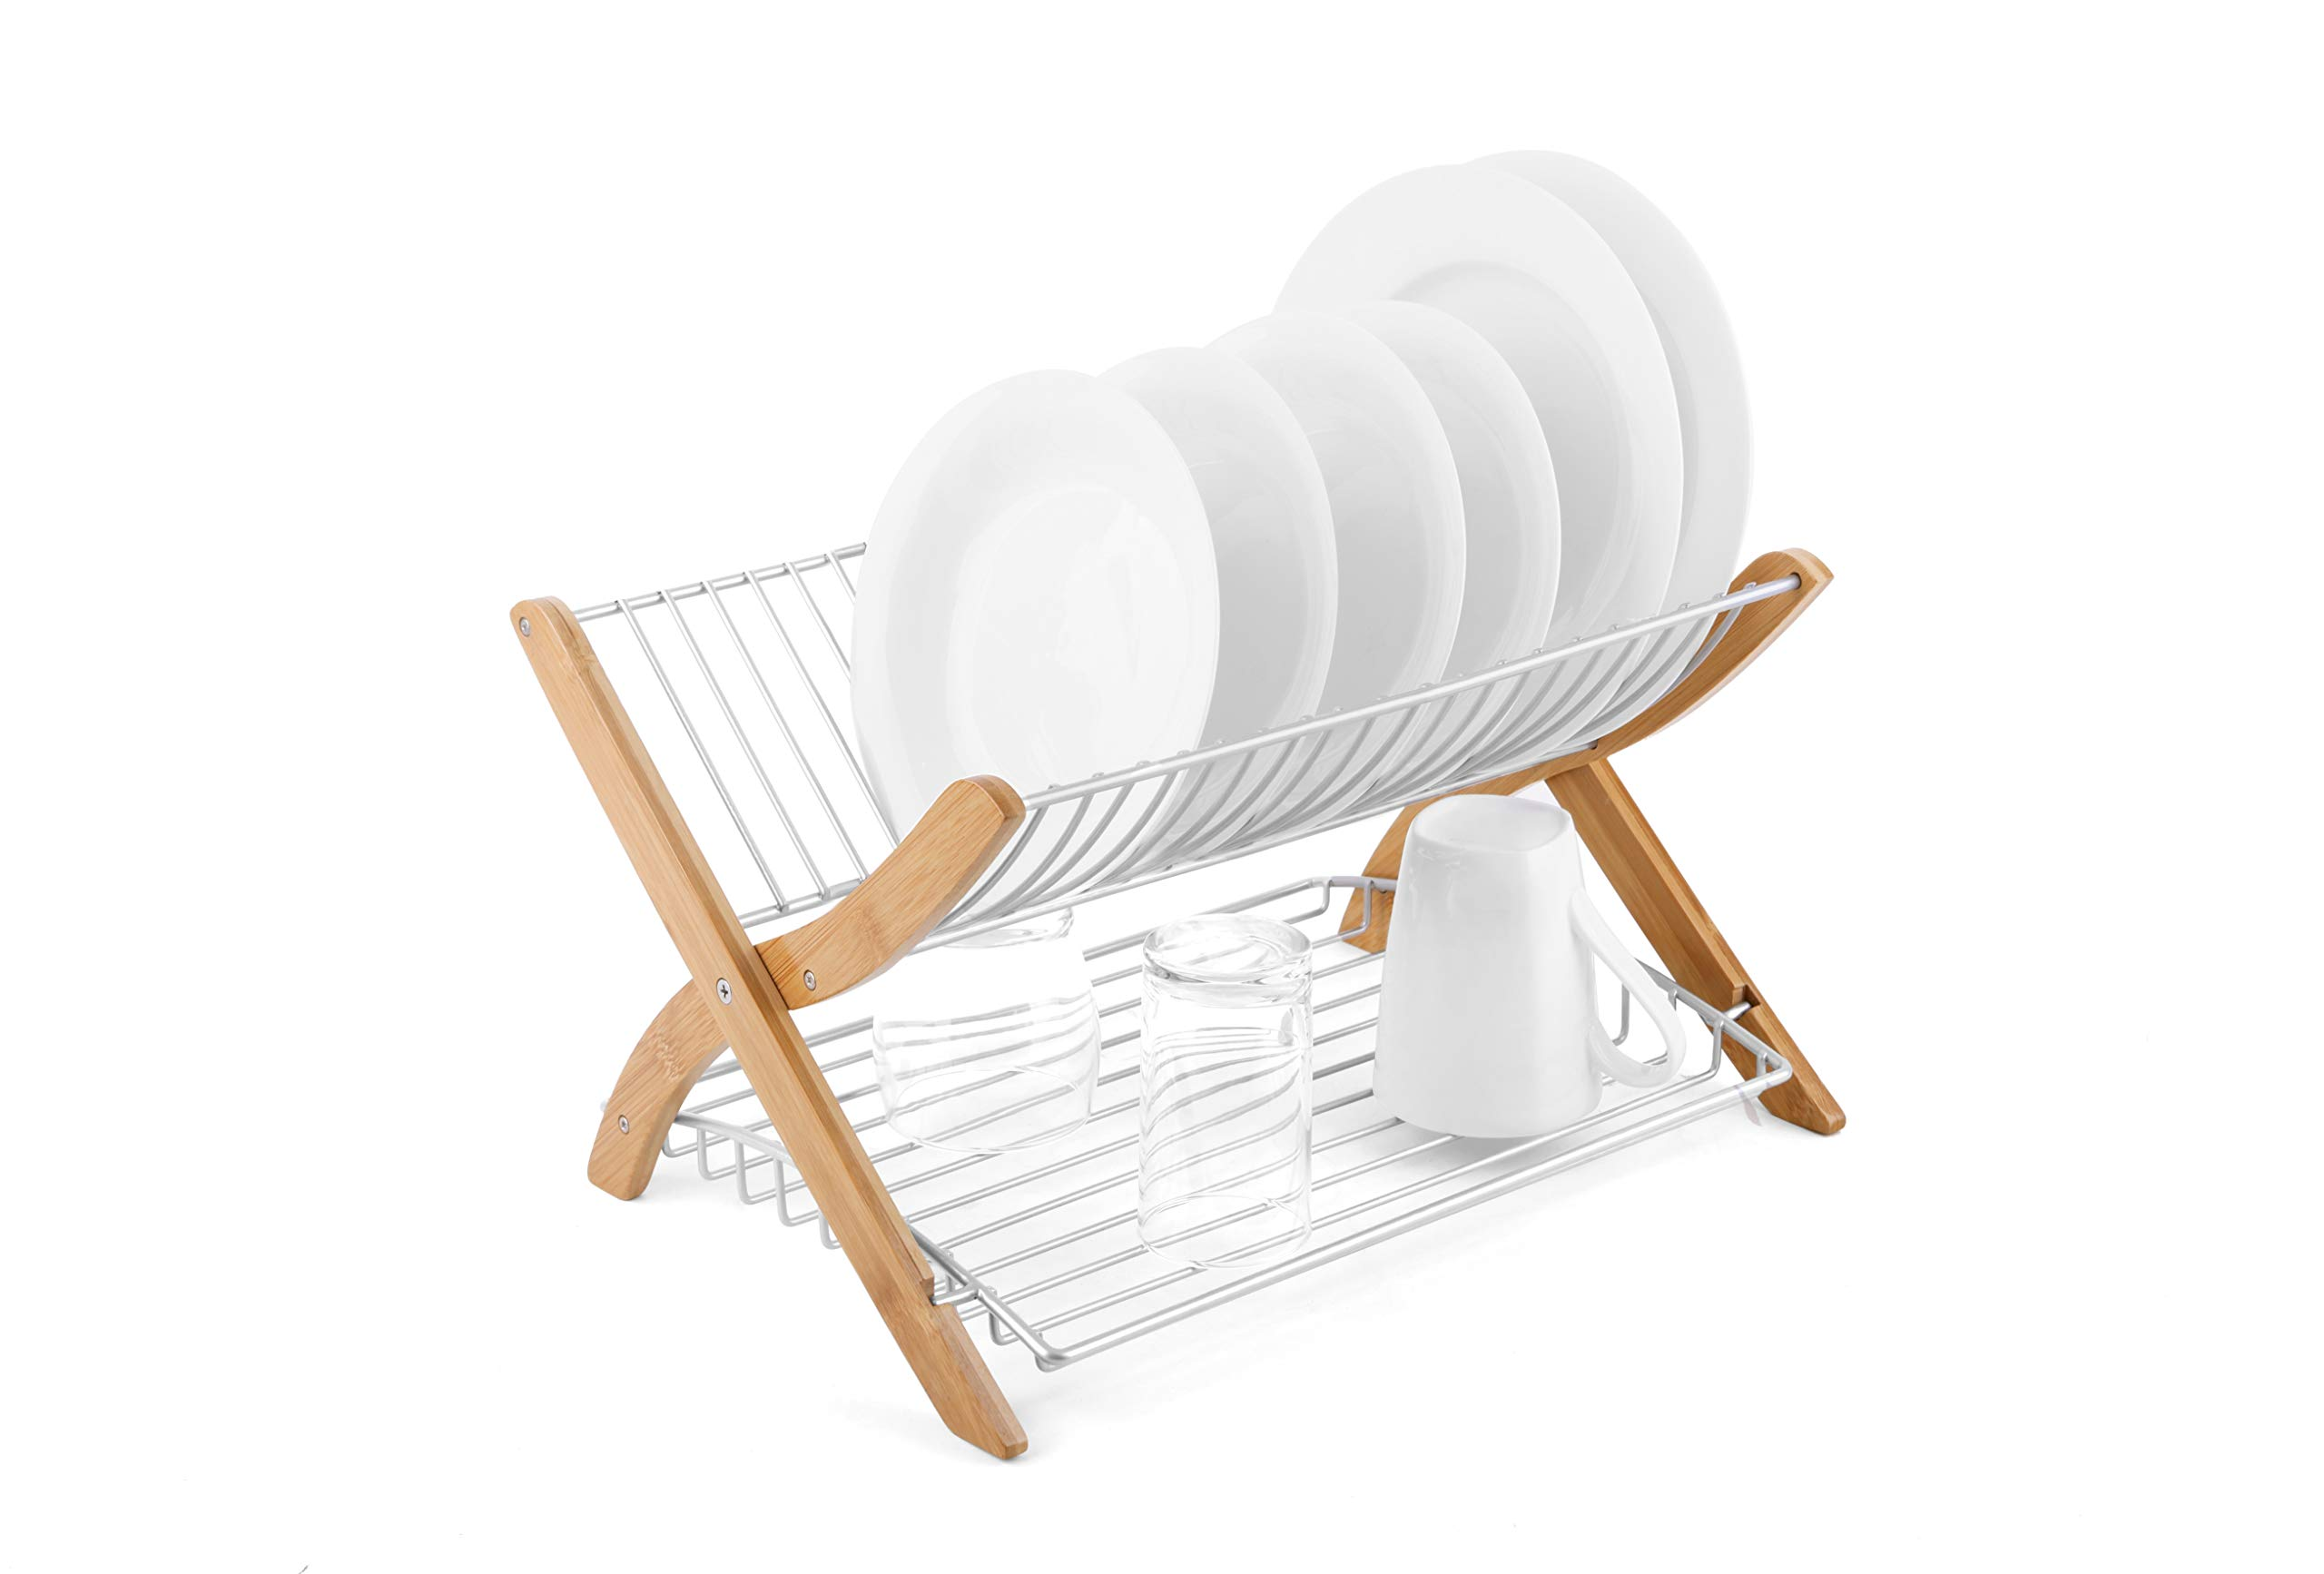 Umbra Dish Drying Rack - (Nickel/Wood Finish) Collapsible Dish Drainer and Foldable Drying Rack for Kitchen Counter That Dries your Dishes Twice as Fast